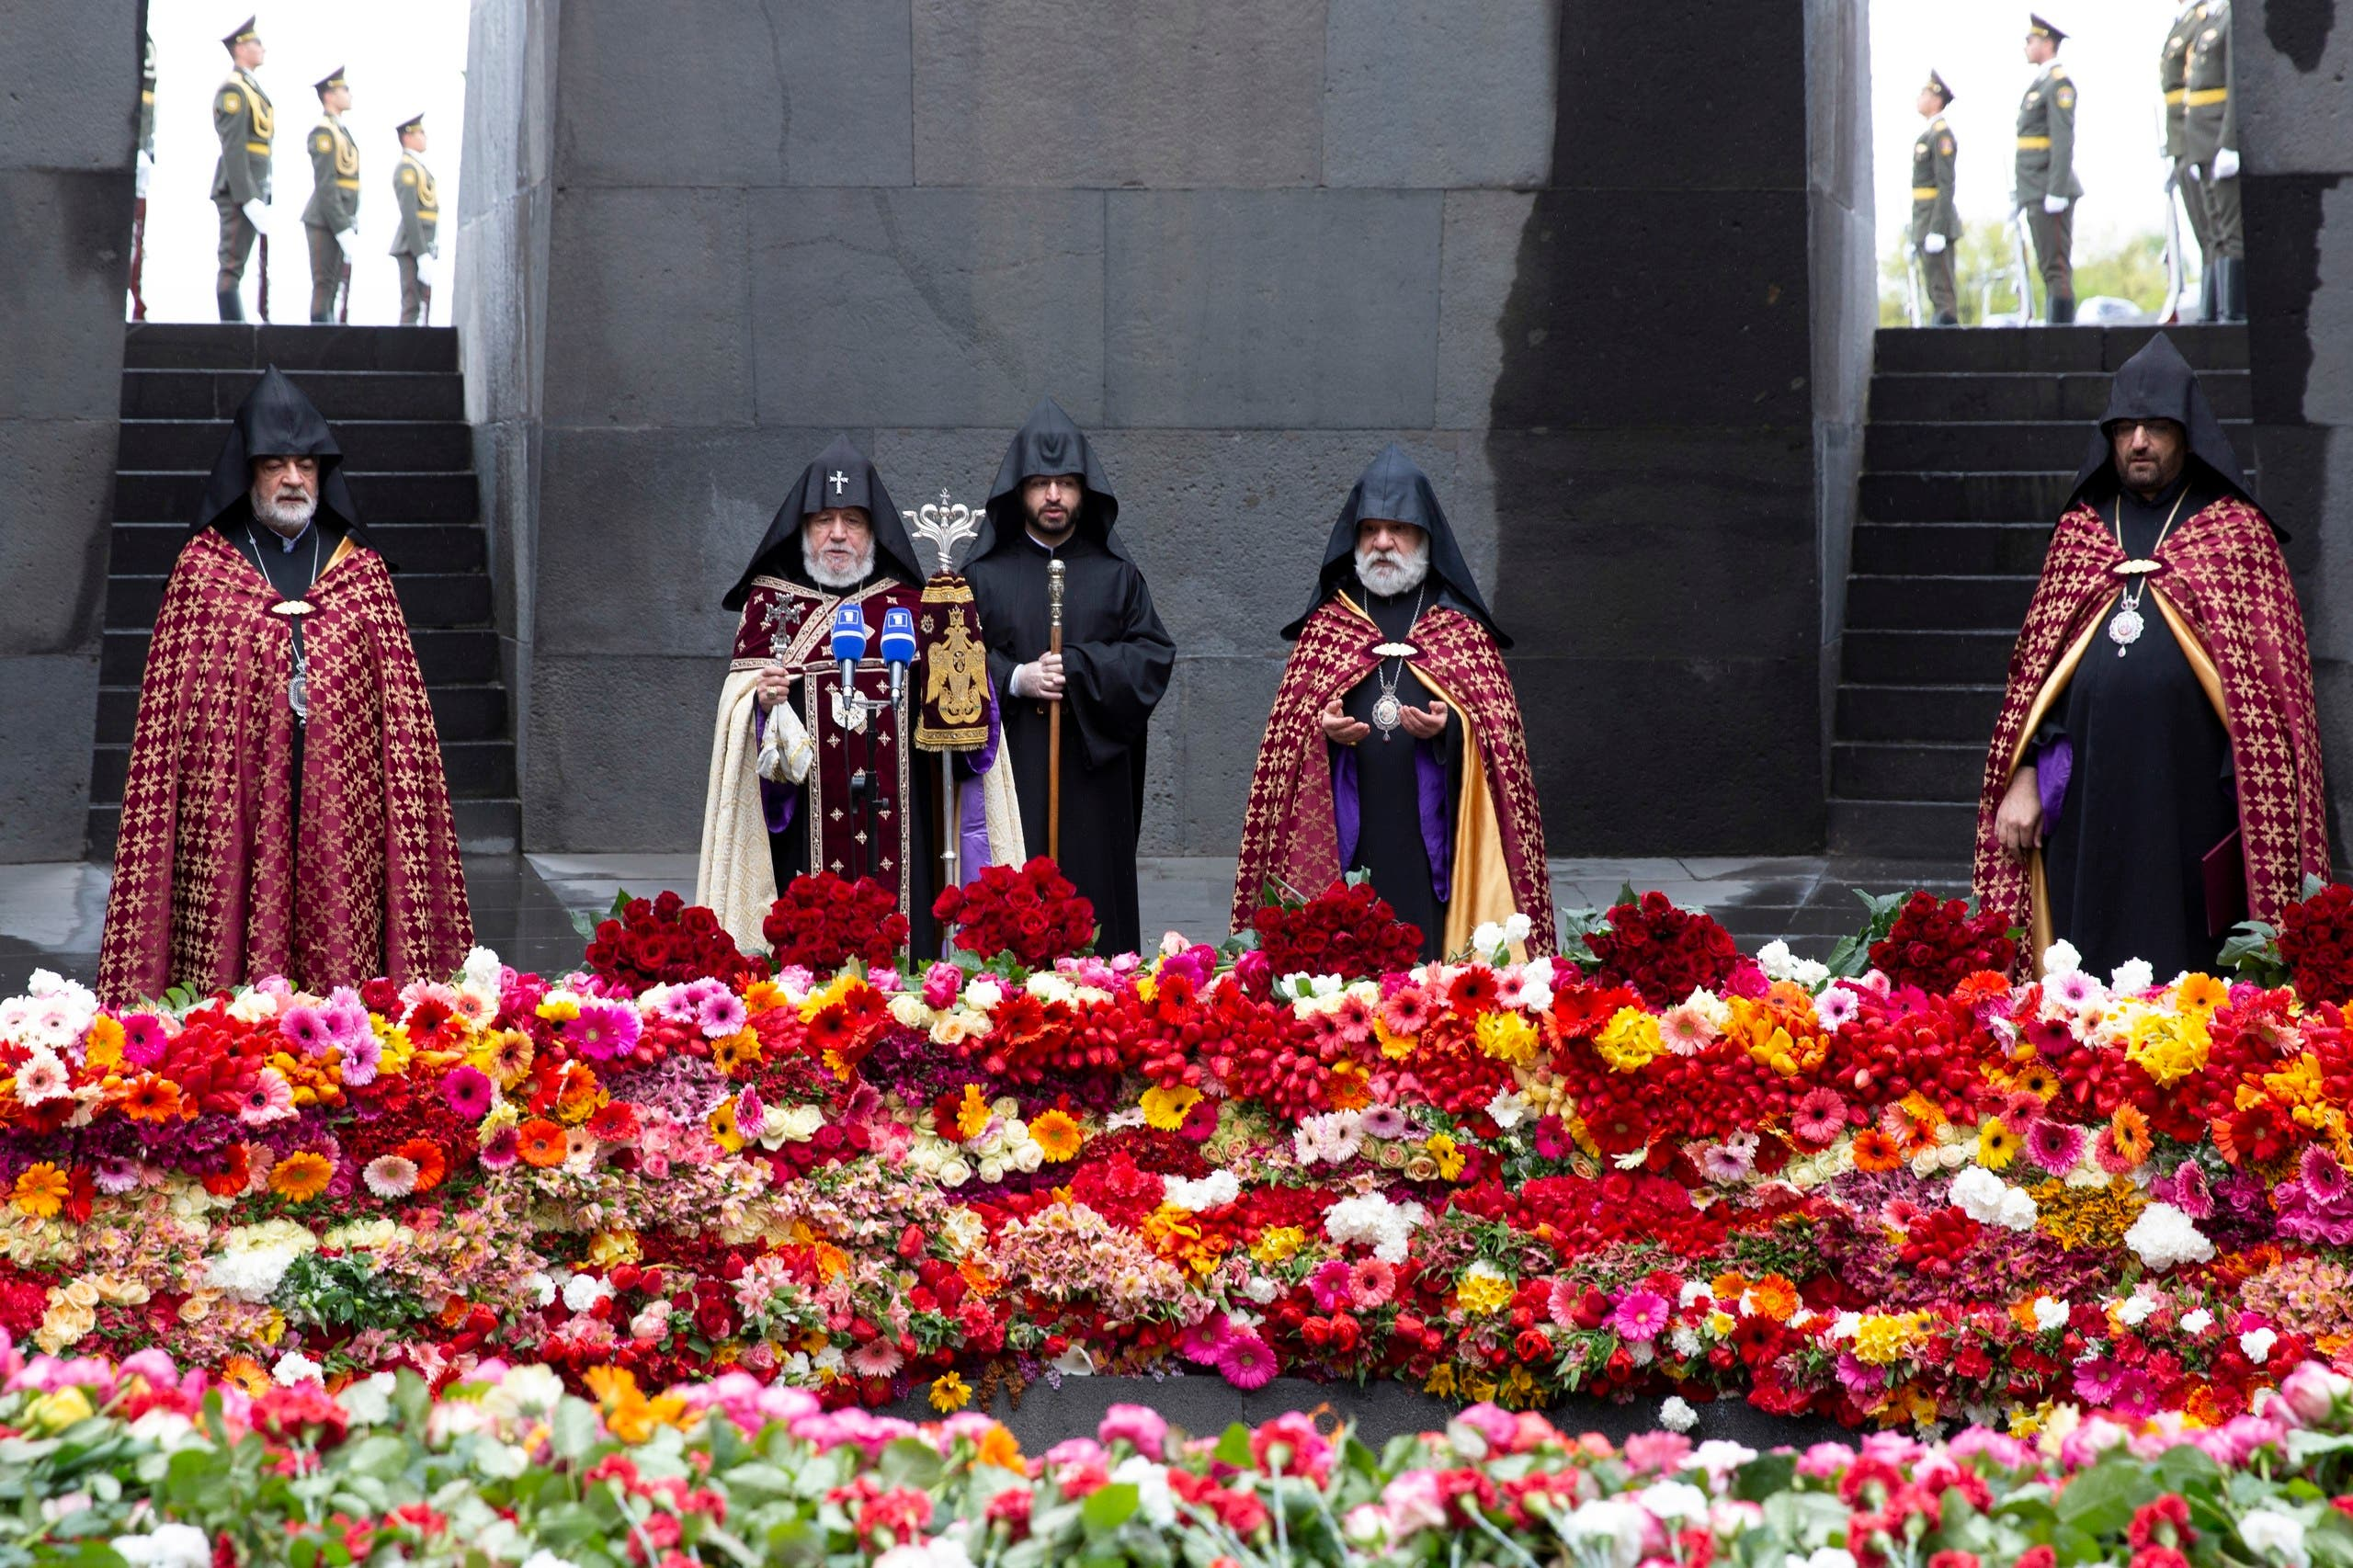 Armenian Apostolic Church leader Catholicos Garegin II, second left, and other Armenian Apostolic Church clerics, observe social distancing guidelines as they attend a memorial service to commemorate the 105th anniversary of the massacre in Yerevan, Armenia, on Friday, April 24, 2020. (AP)